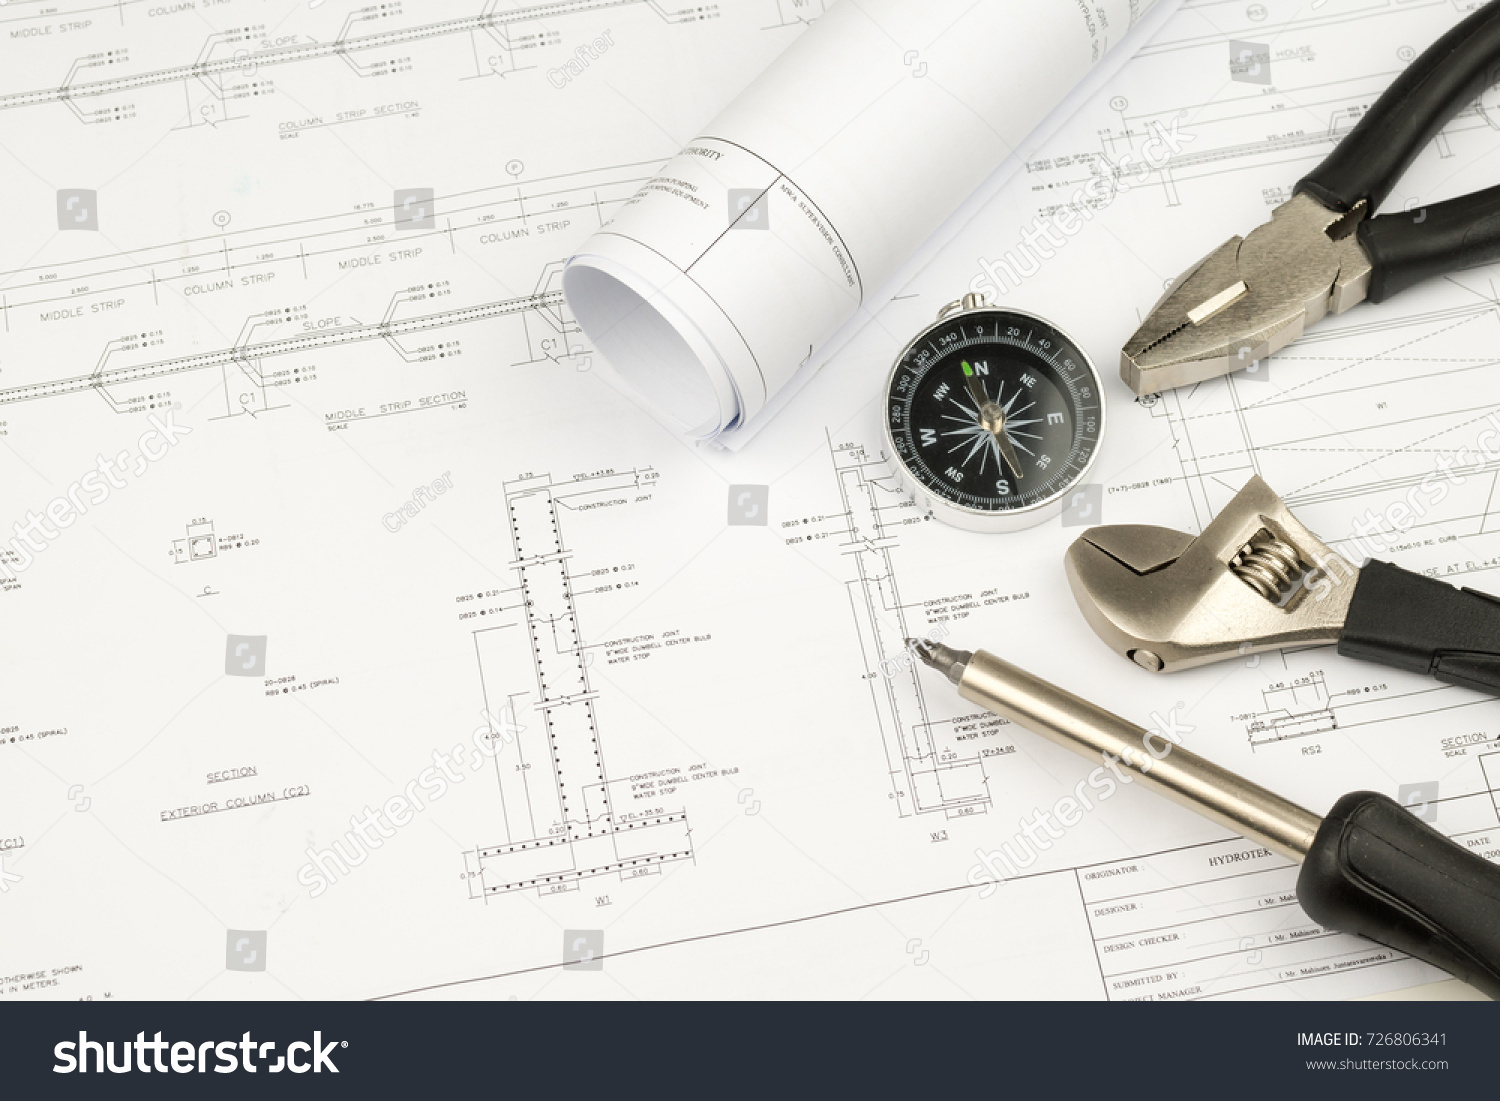 Engineer Construction Business Work Concept Engineering Stock Photo Diagrams Blueprint Paper Drafting And Industrial Equipment Technical Tools